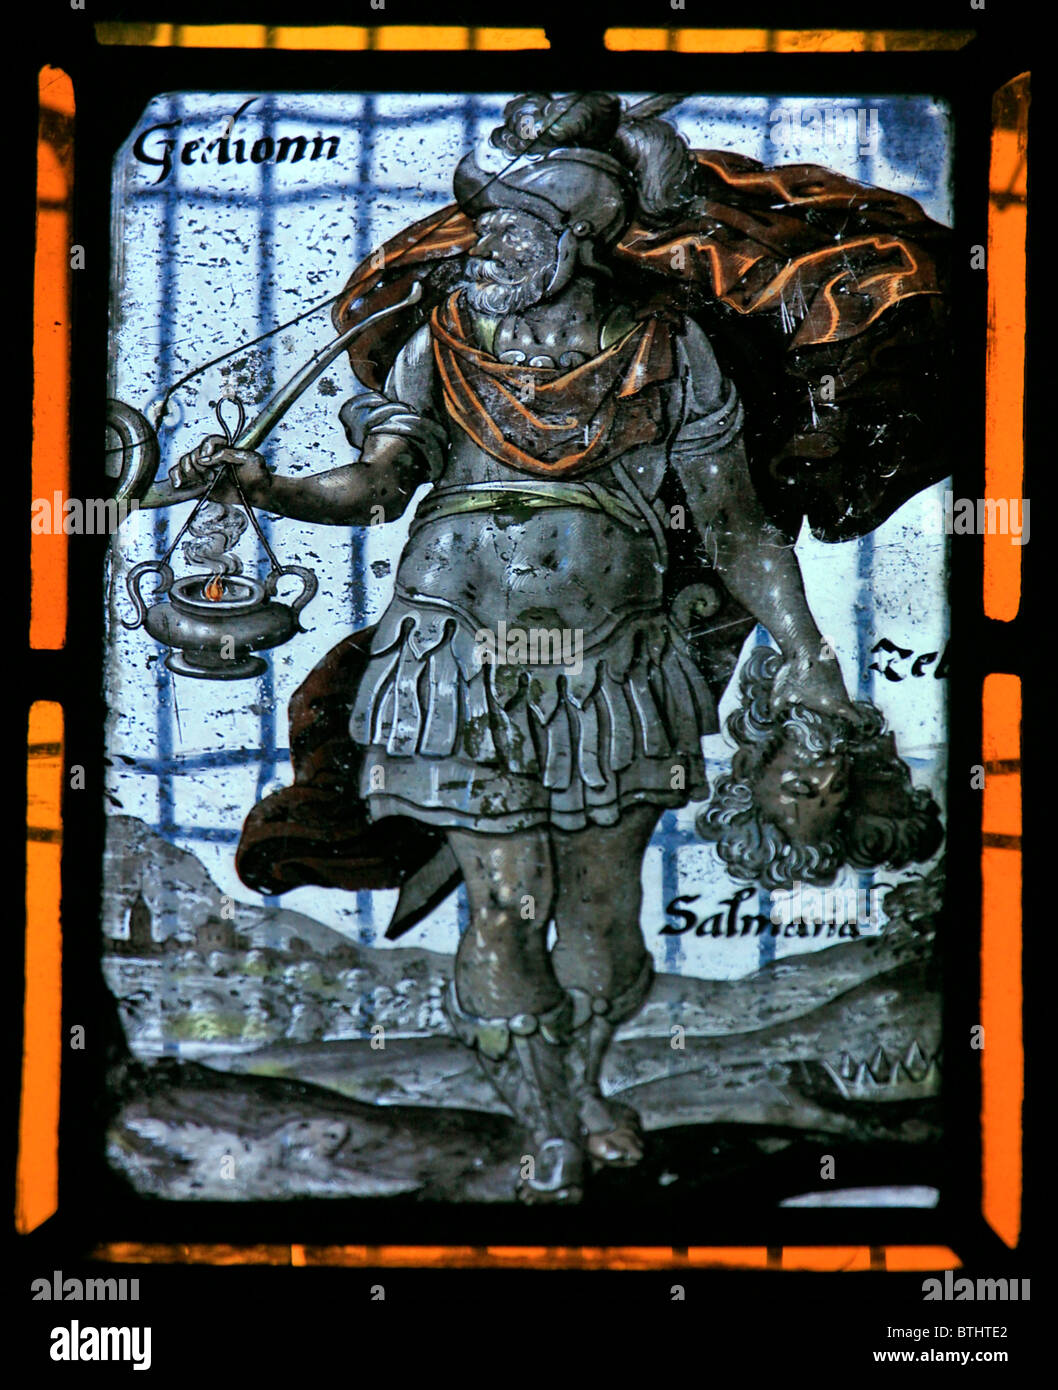 A Stained glass window depicting Gideon with trumpet and clay bottle and torch, Flemish School, circa 17th century - Stock Image